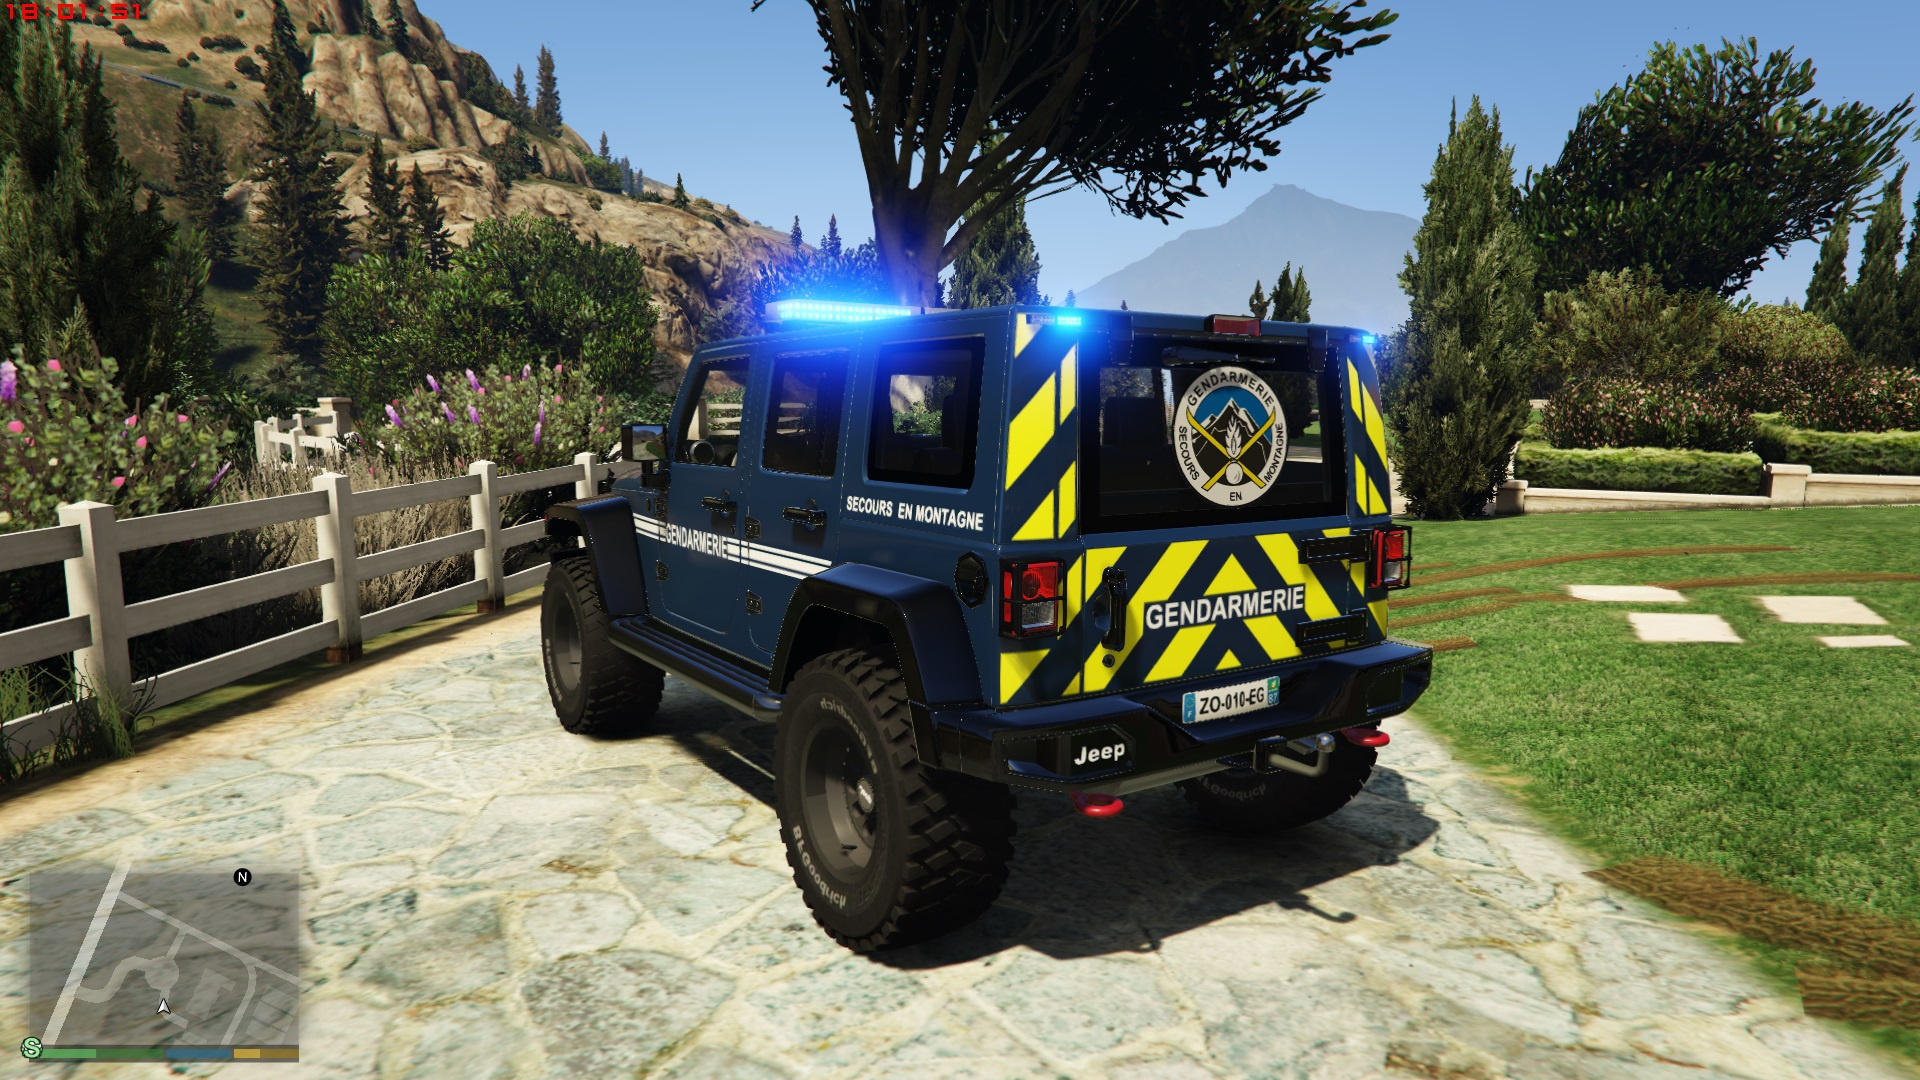 jeep wrangler 2014 french gendarmerie p g h m noels els gta5. Black Bedroom Furniture Sets. Home Design Ideas